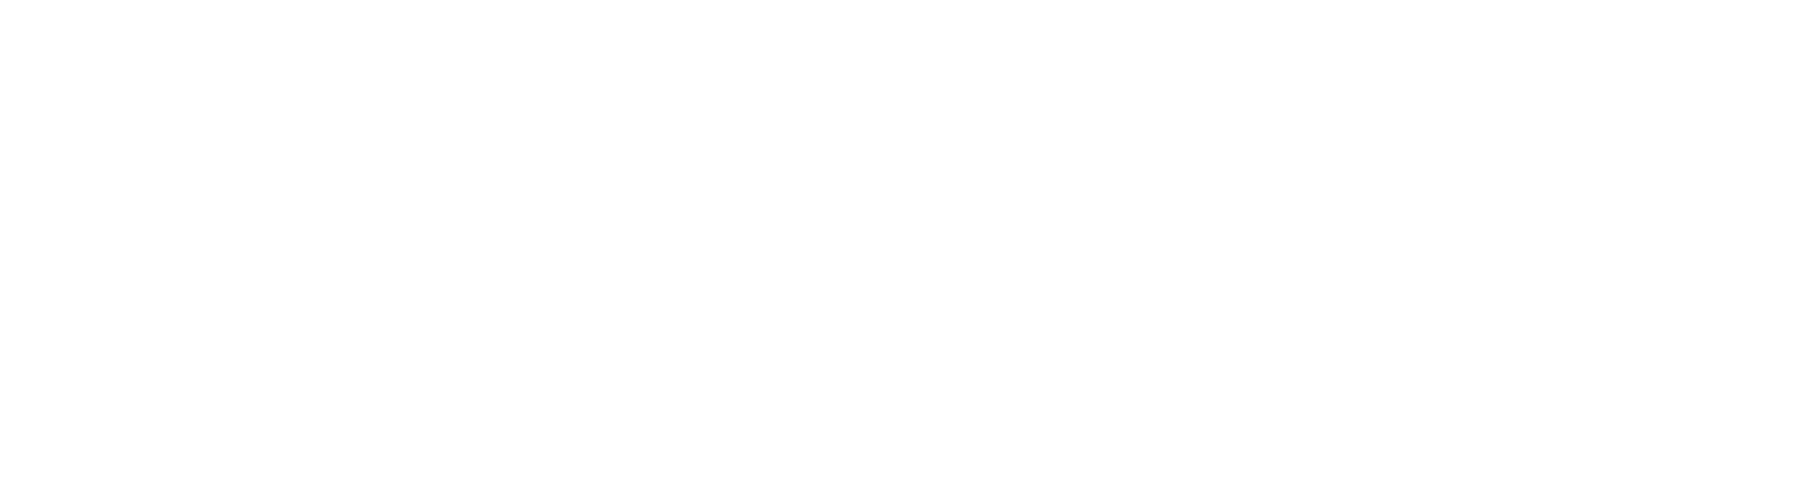 17040 Swoop Logo & Destination Bar Lockup AW white small.png